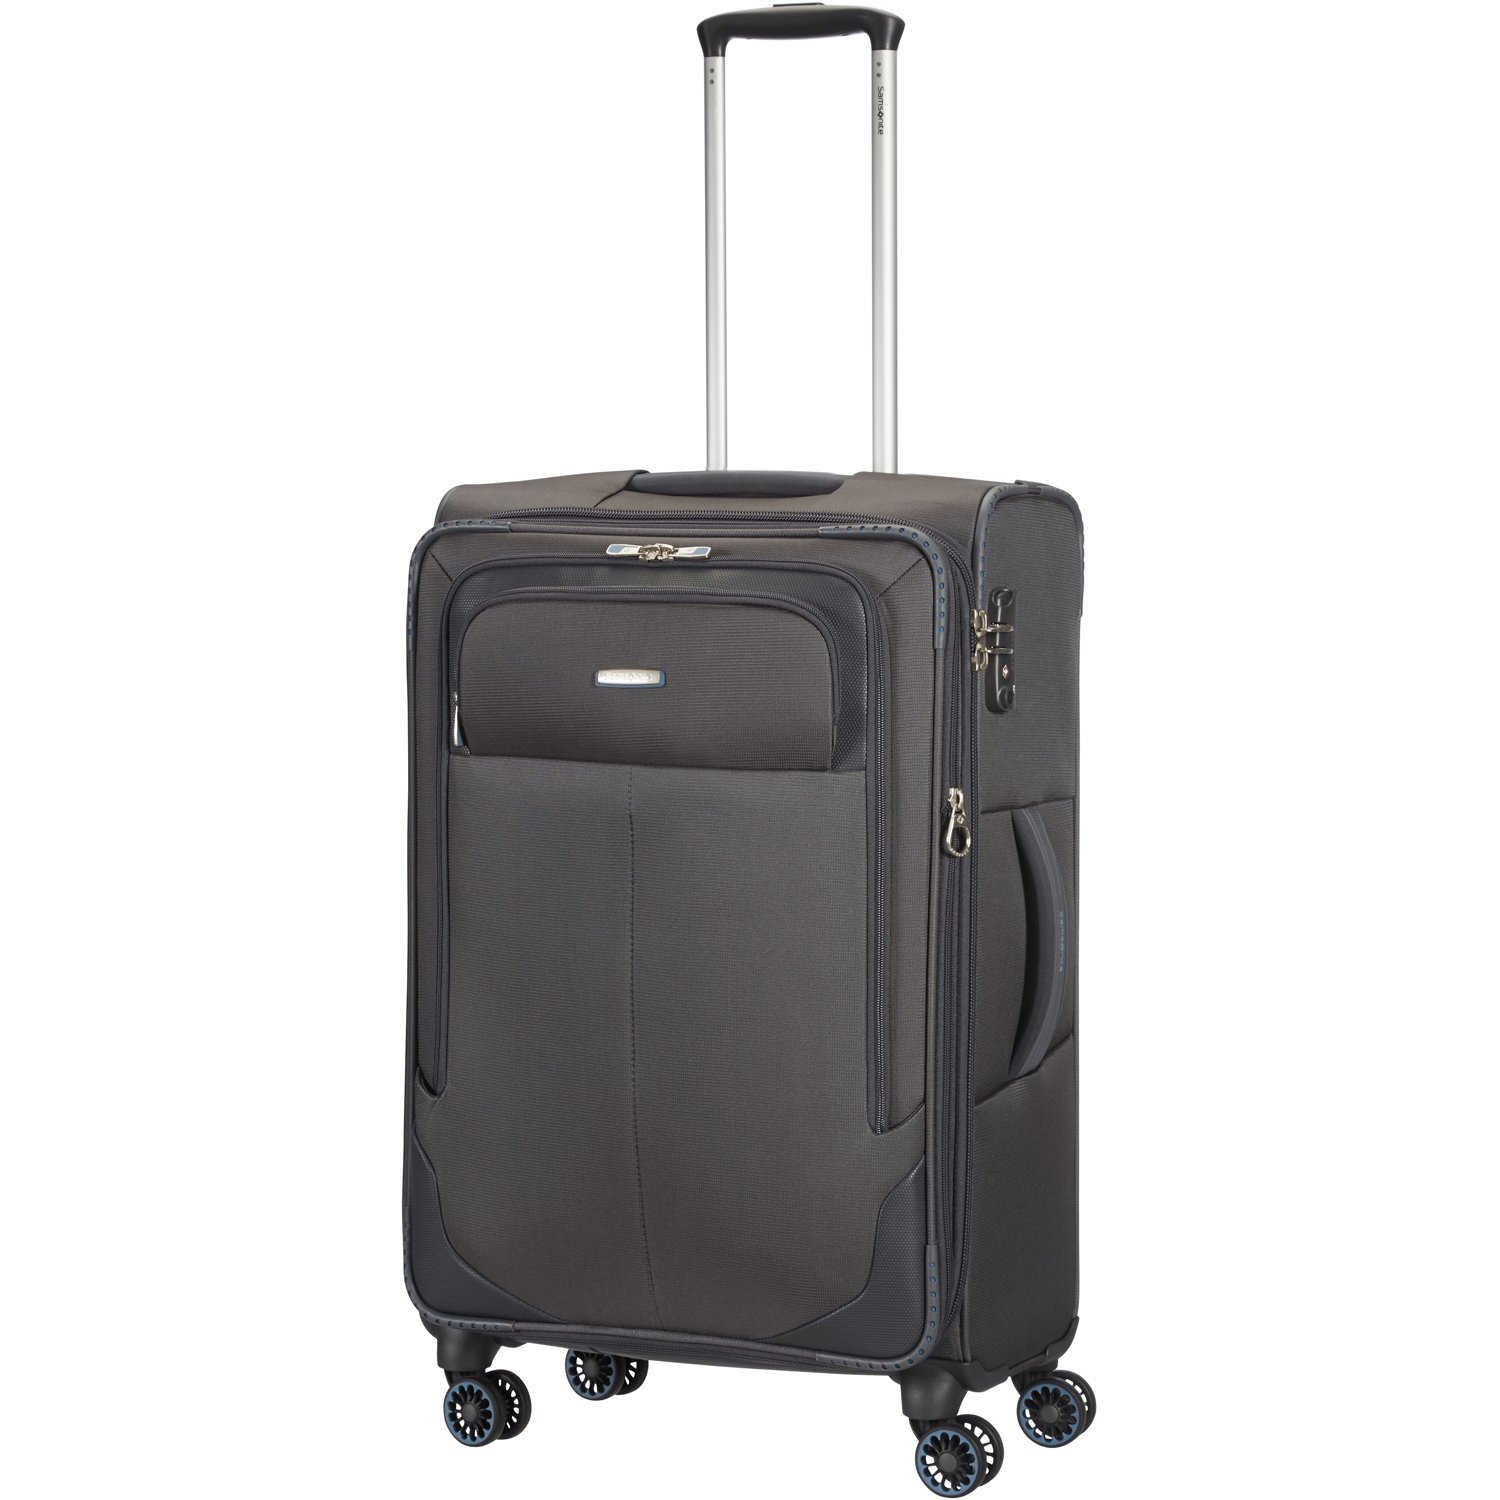 Samsonite Ultracore Spinner 70/26 Exp Maletas y trolleys, 70 cm, 84 L, Gris (Gris): Amazon.es: Equipaje